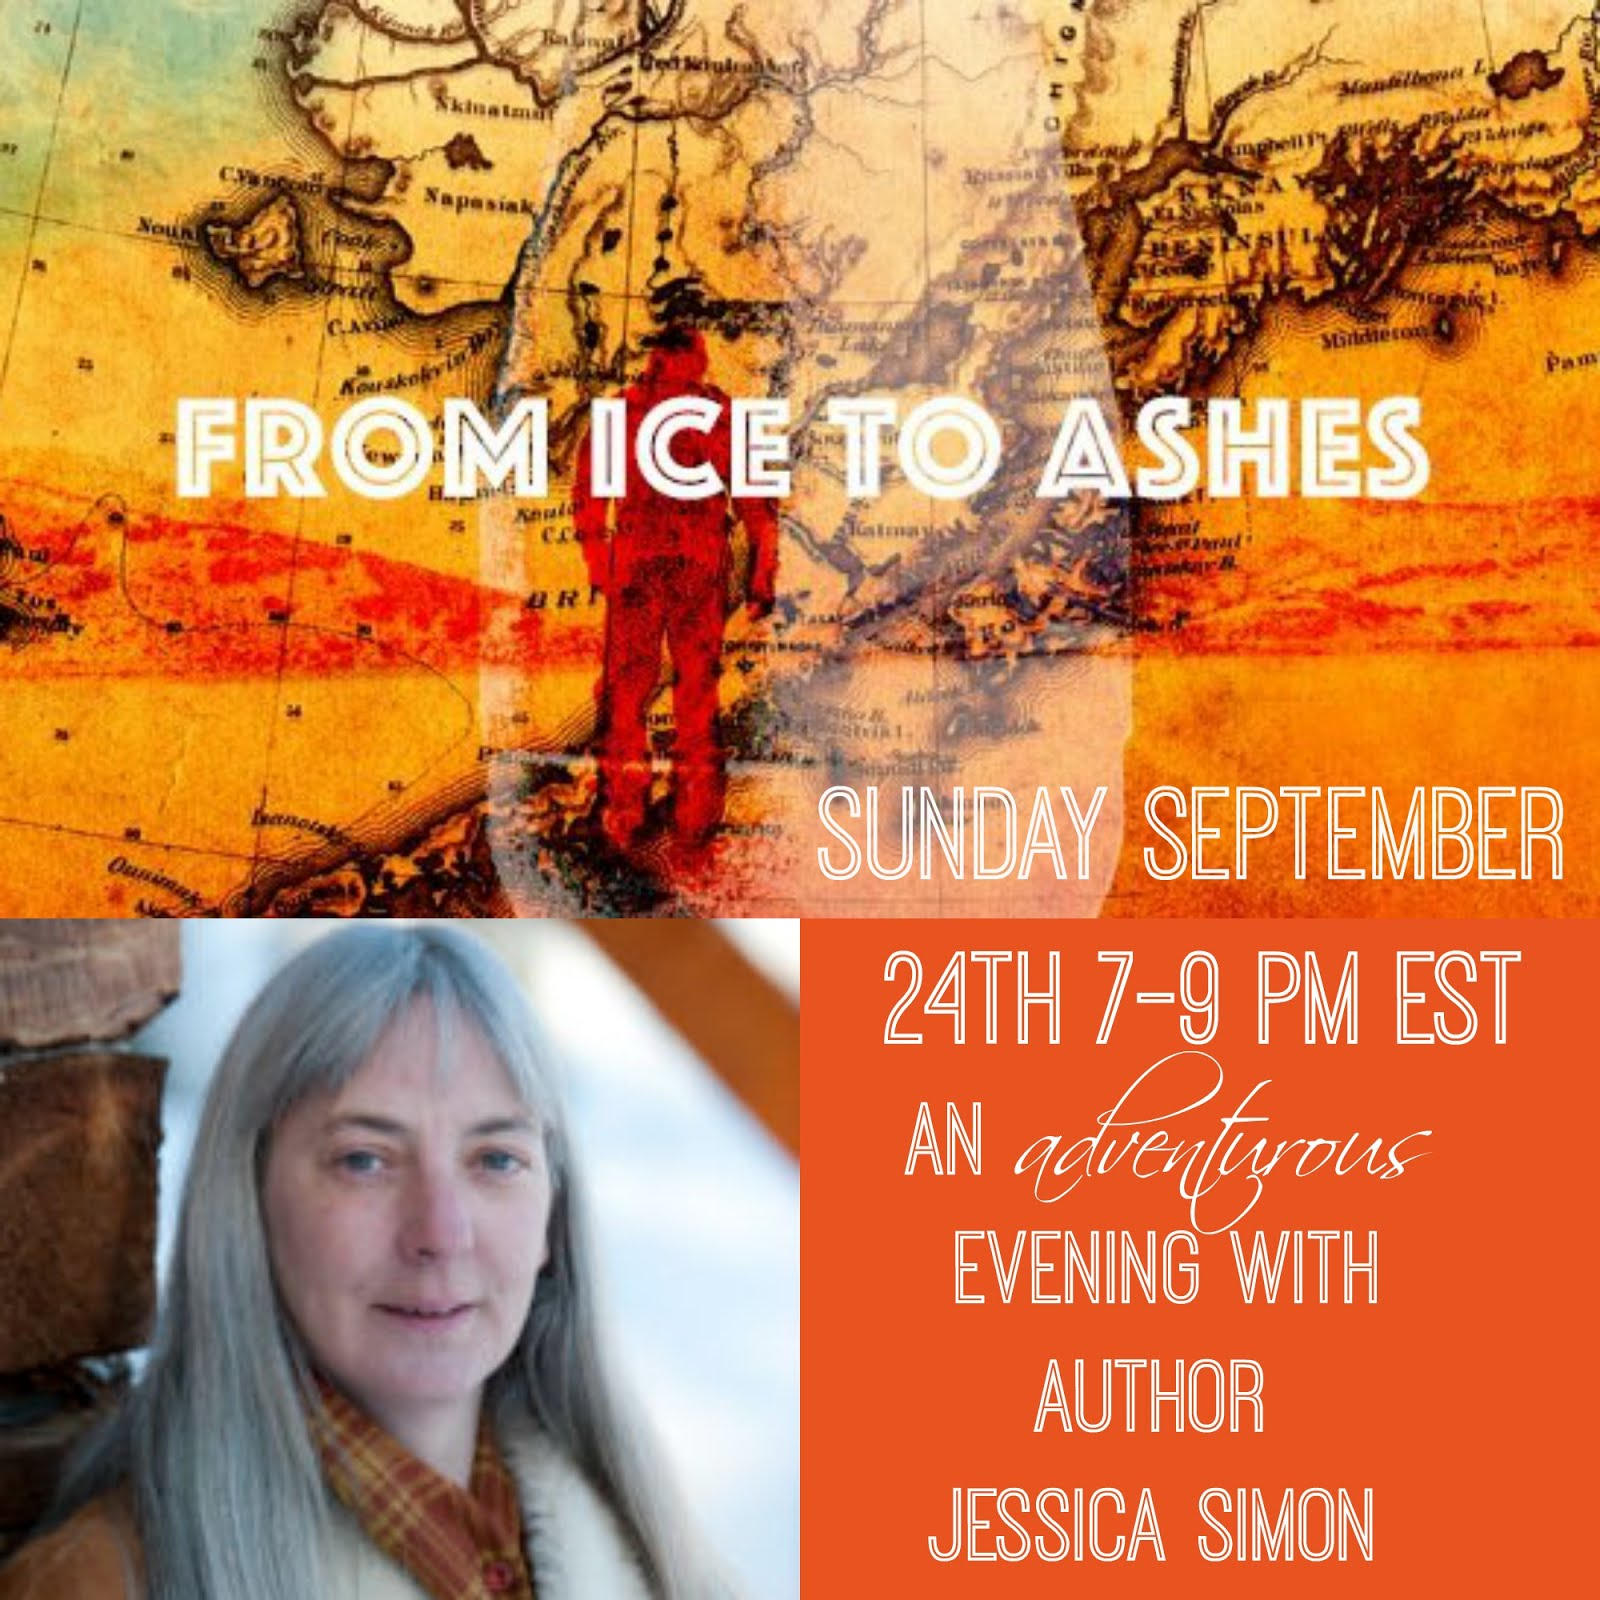 Join us! For A Facebook Party Celebrating the Book from Ice To Ashes